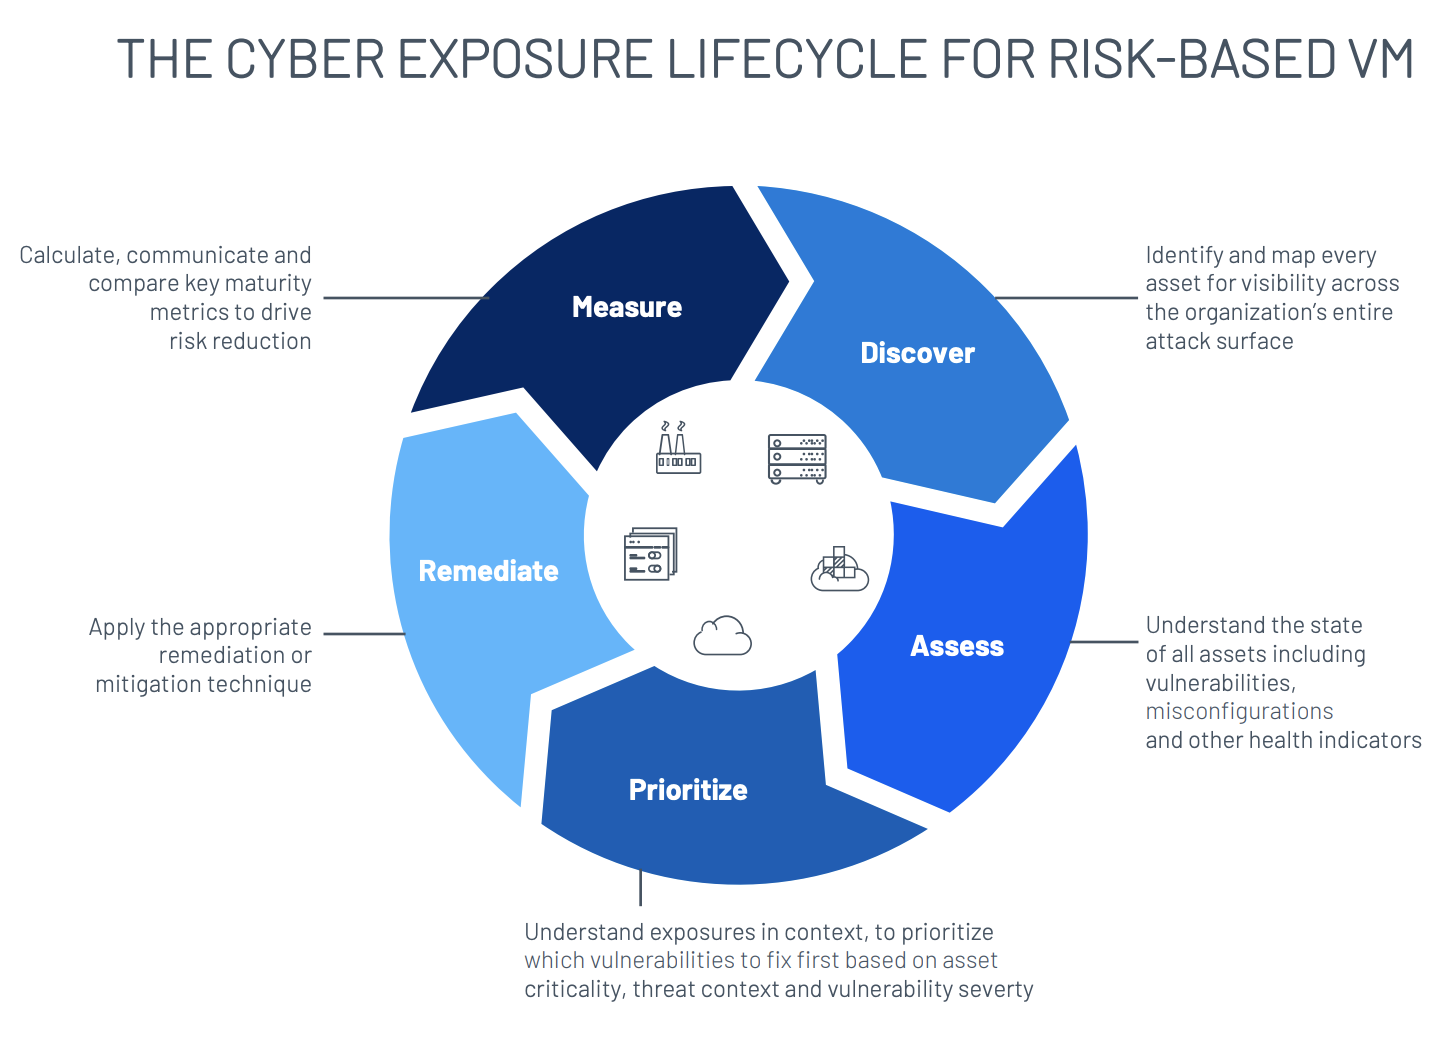 Cyber Exposure Lifecycle for Risk-Based VM